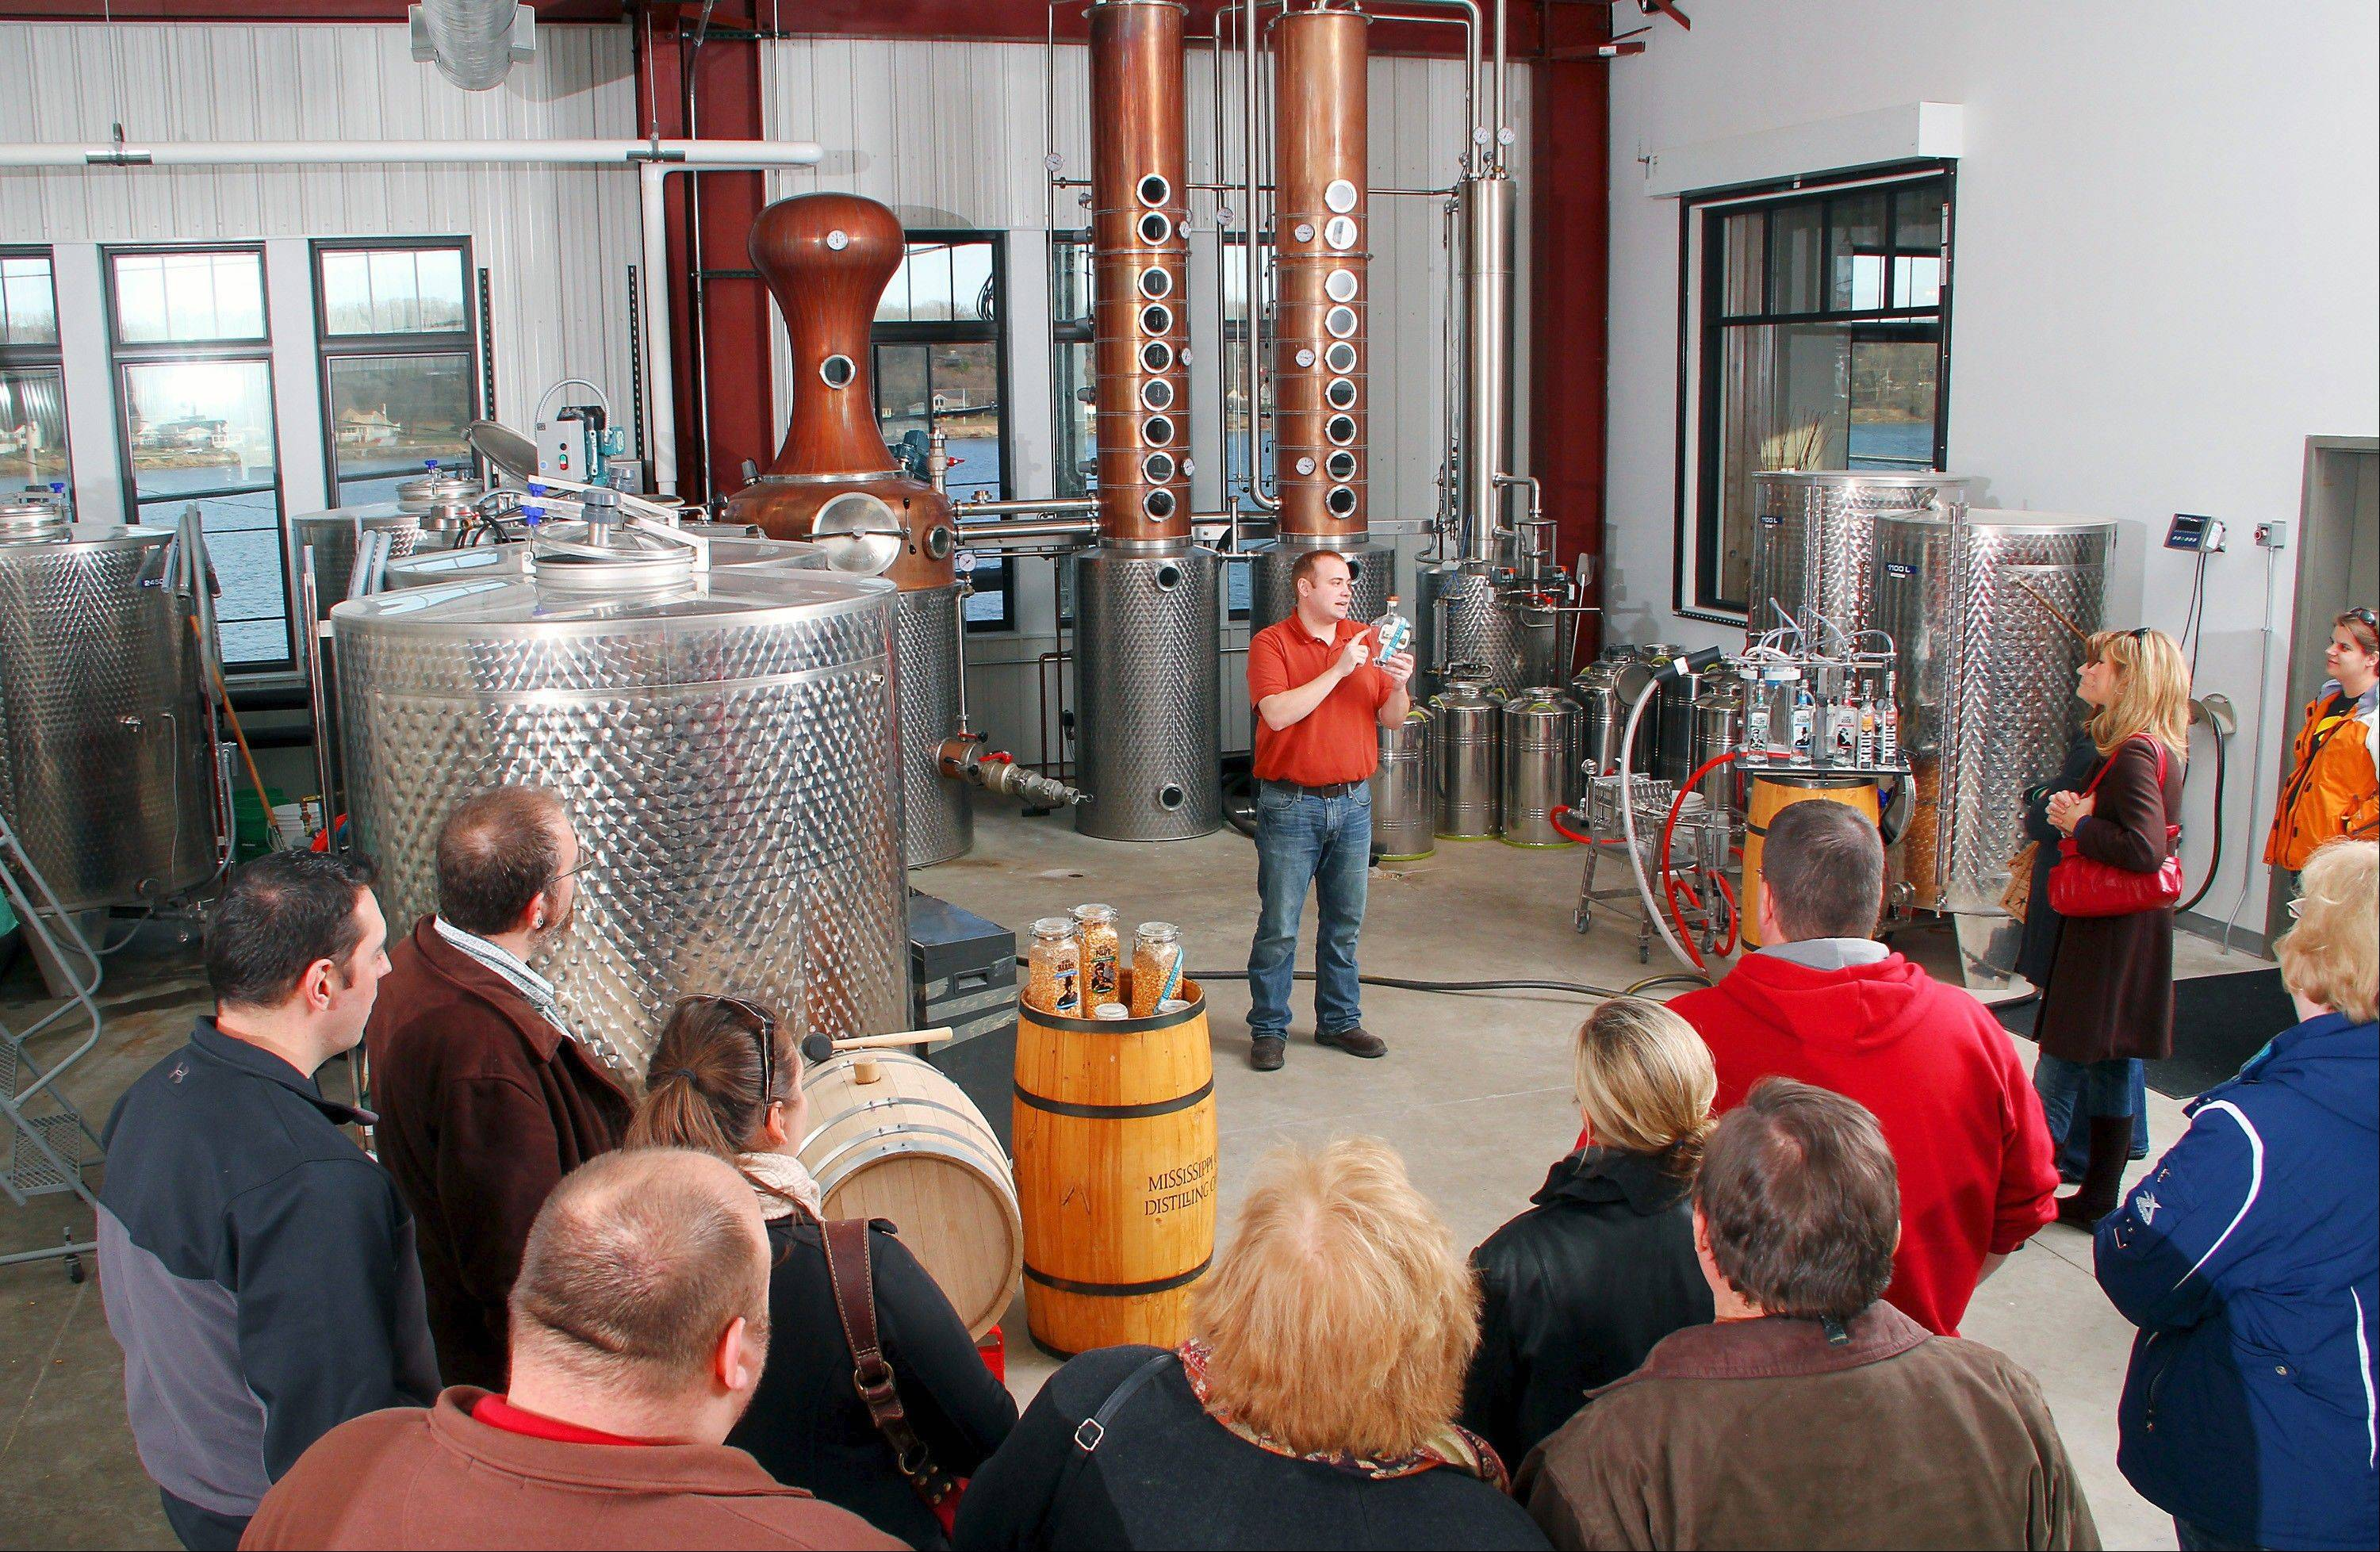 Garrett Burchett takes visitors on a tour of Mississippi River Distilling Co., a micro-distillery he and his brother opened in Le Claire, Iowa.